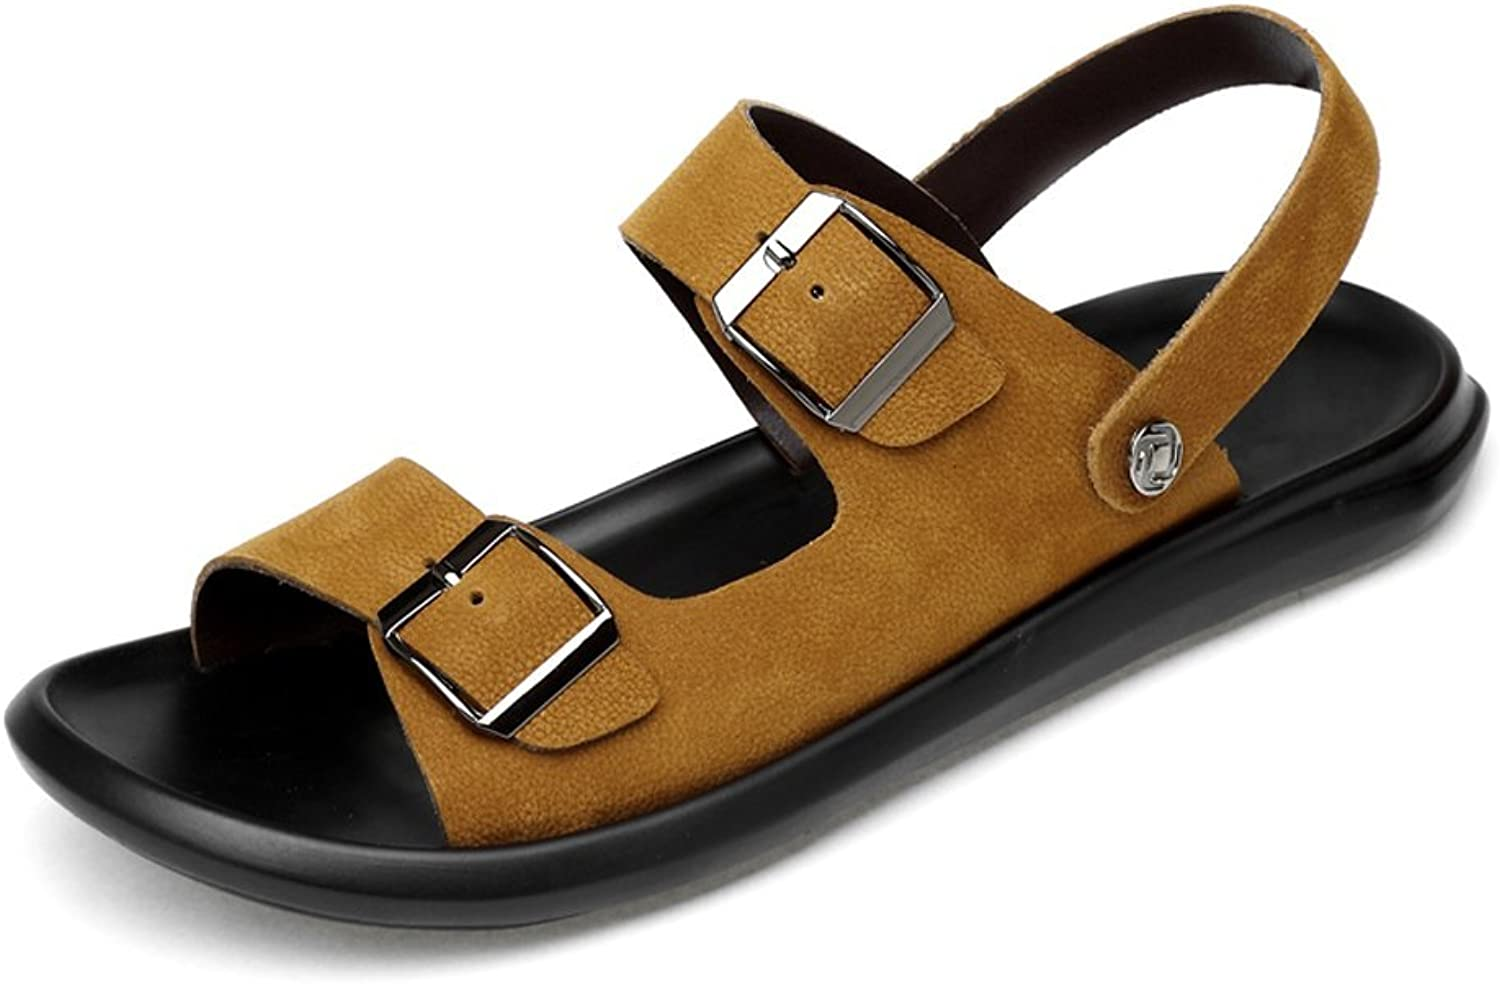 Dig dog bone Men's Genuine Leather Beach Slippers Casual Sandals Belt Buckle Closed Non-Slip Soft Sole shoes Adjustable Backless